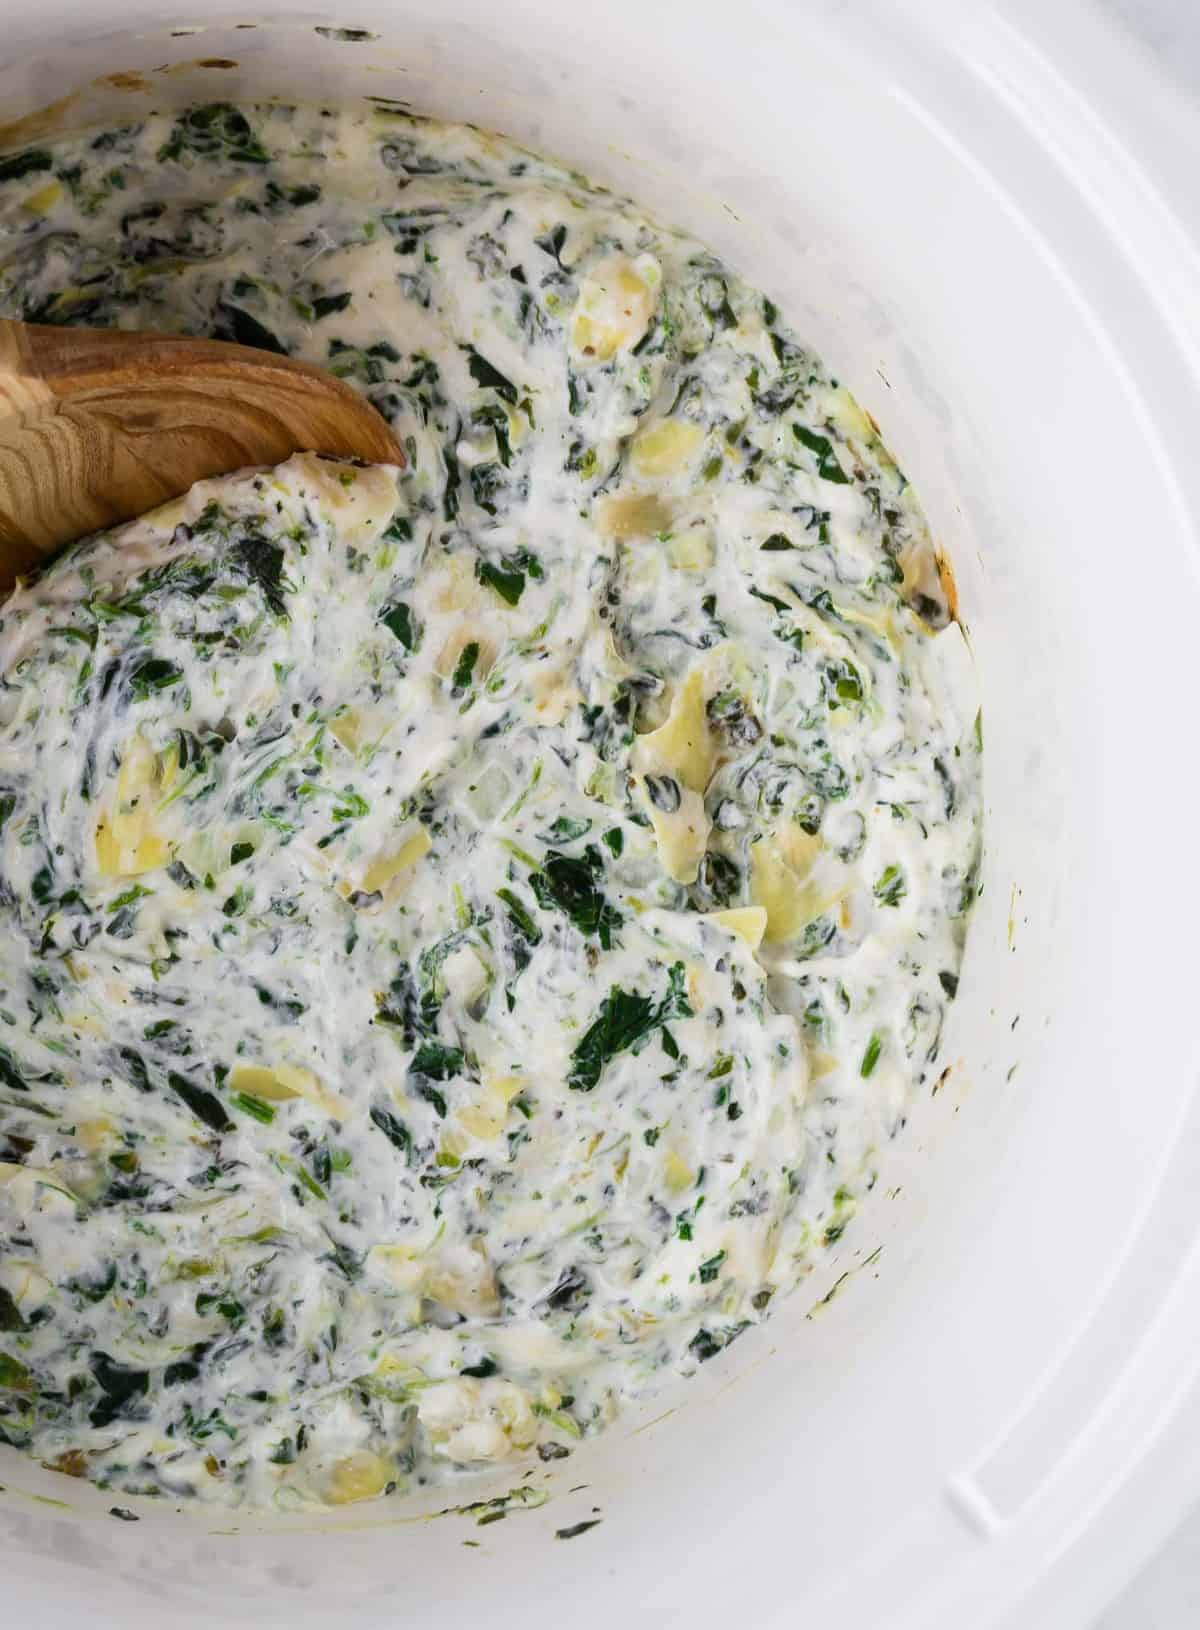 Overhead view of spinach dip with artichoke hearts in a white slow cooker with a wooden spoon.